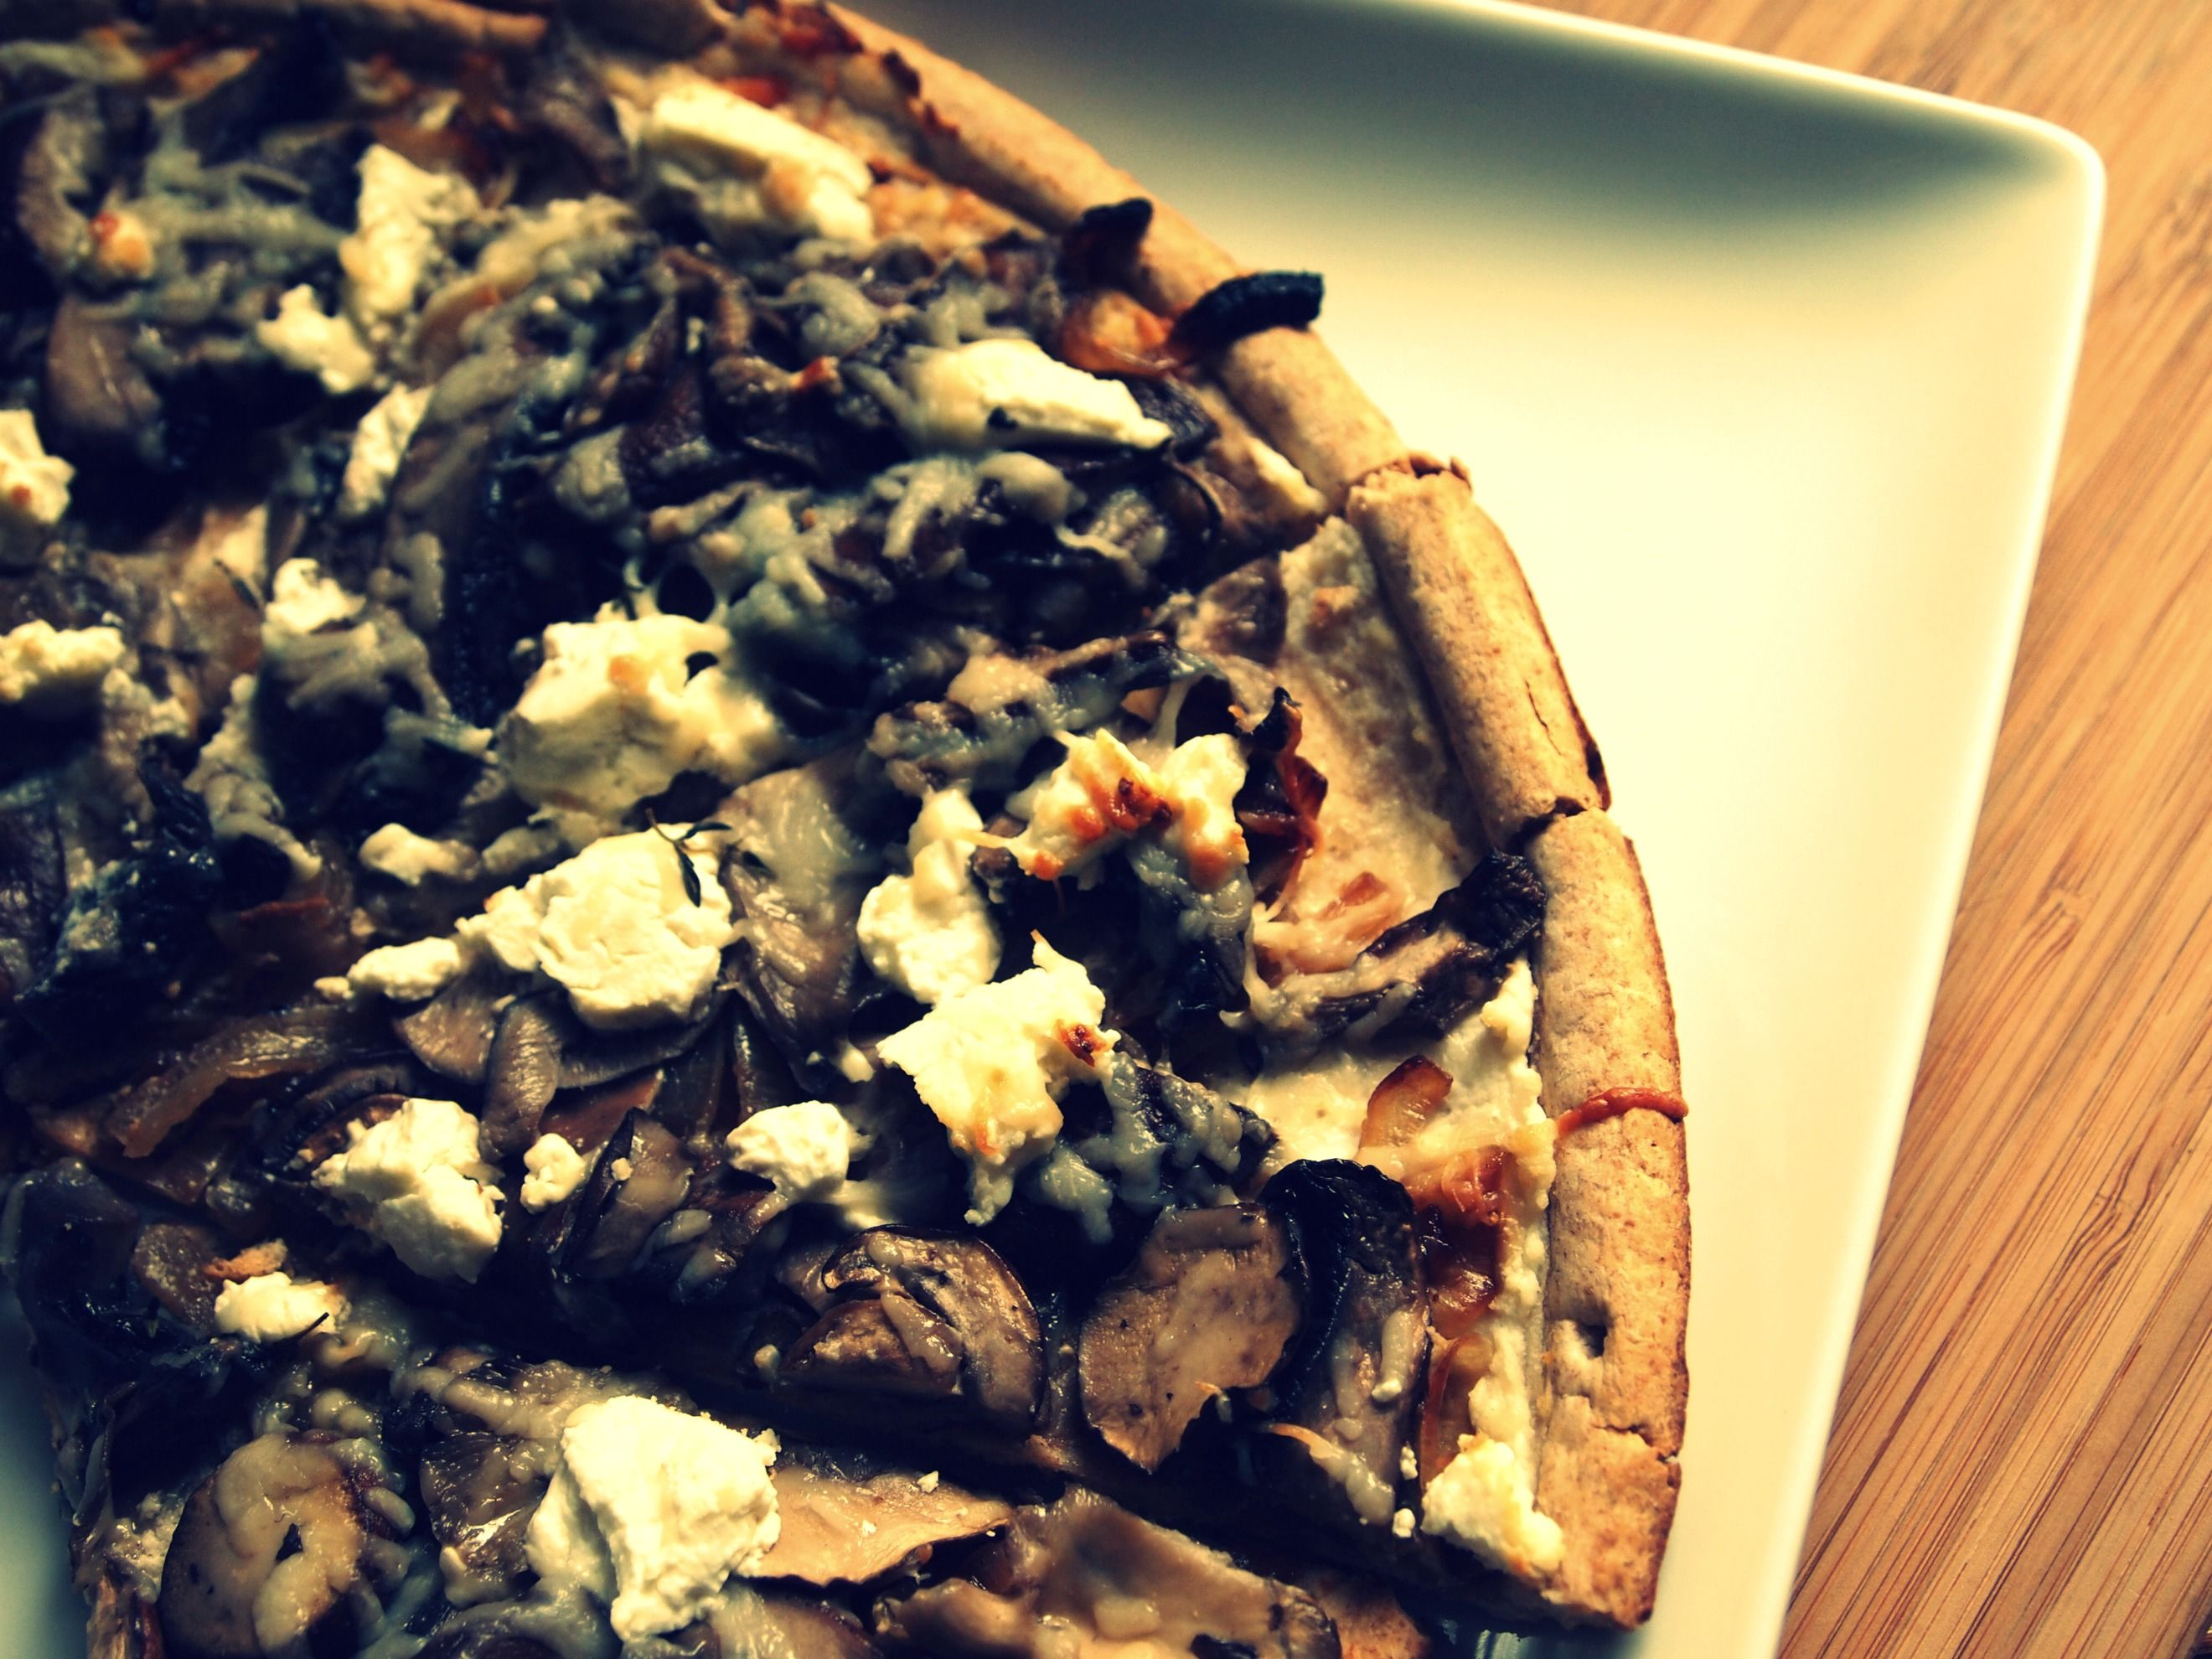 Mushroom, onion, goat cheese on Flatbread